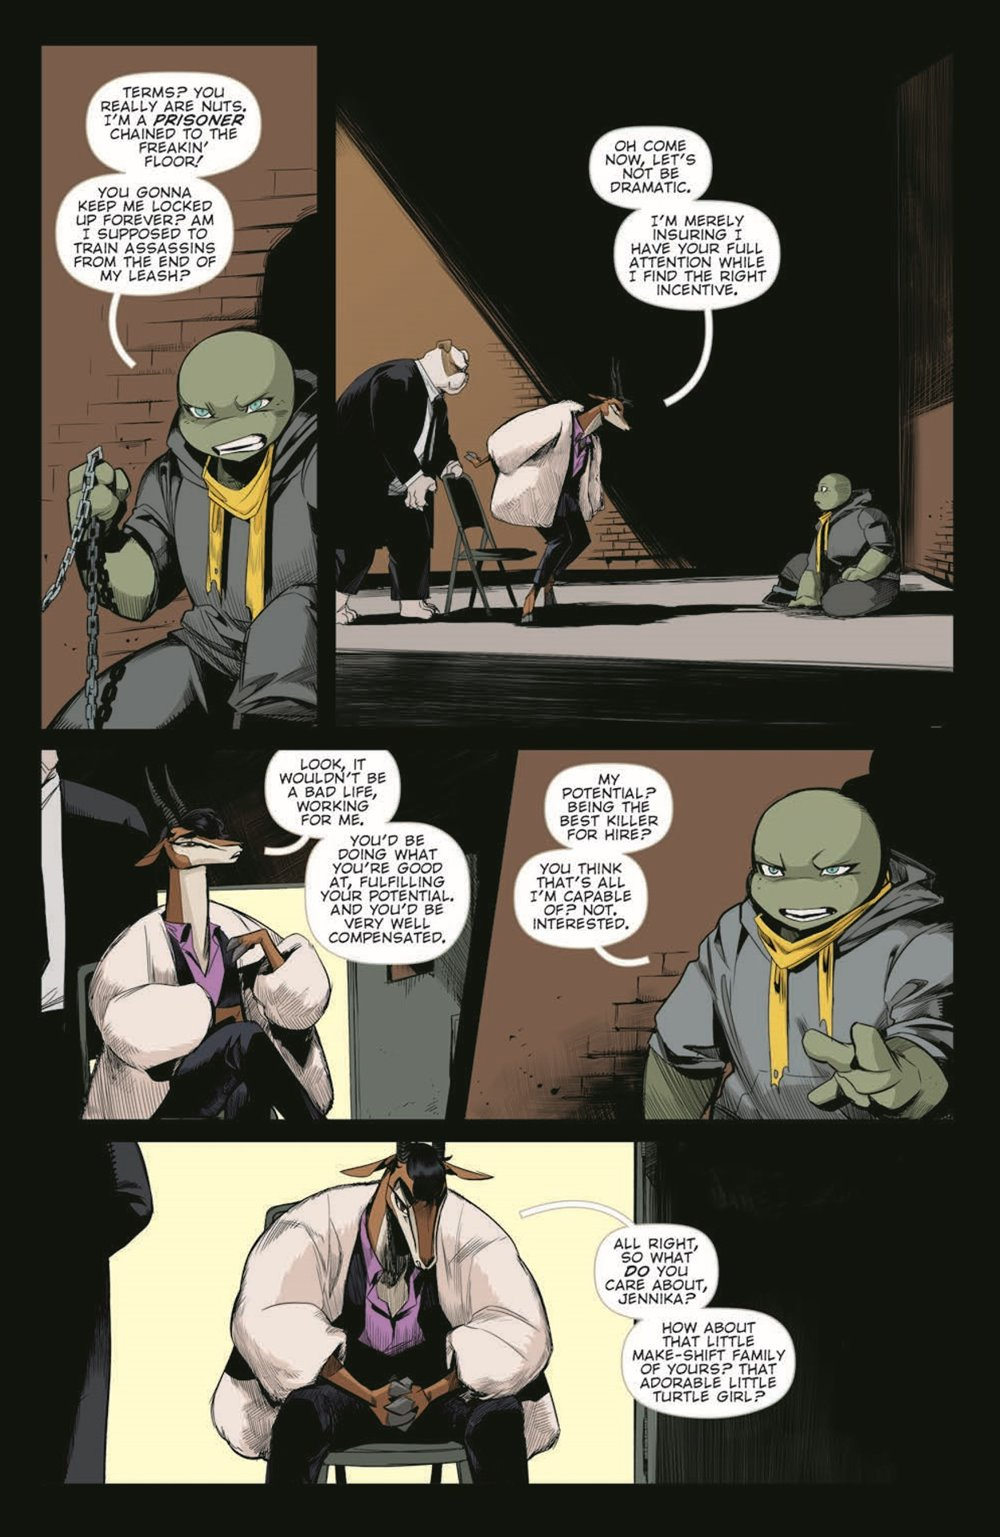 TMNT-JennikaII_06_pr-5 ComicList Previews: TEENAGE MUTANT NINJA TURTLES JENNIKA II #6 (OF 6)